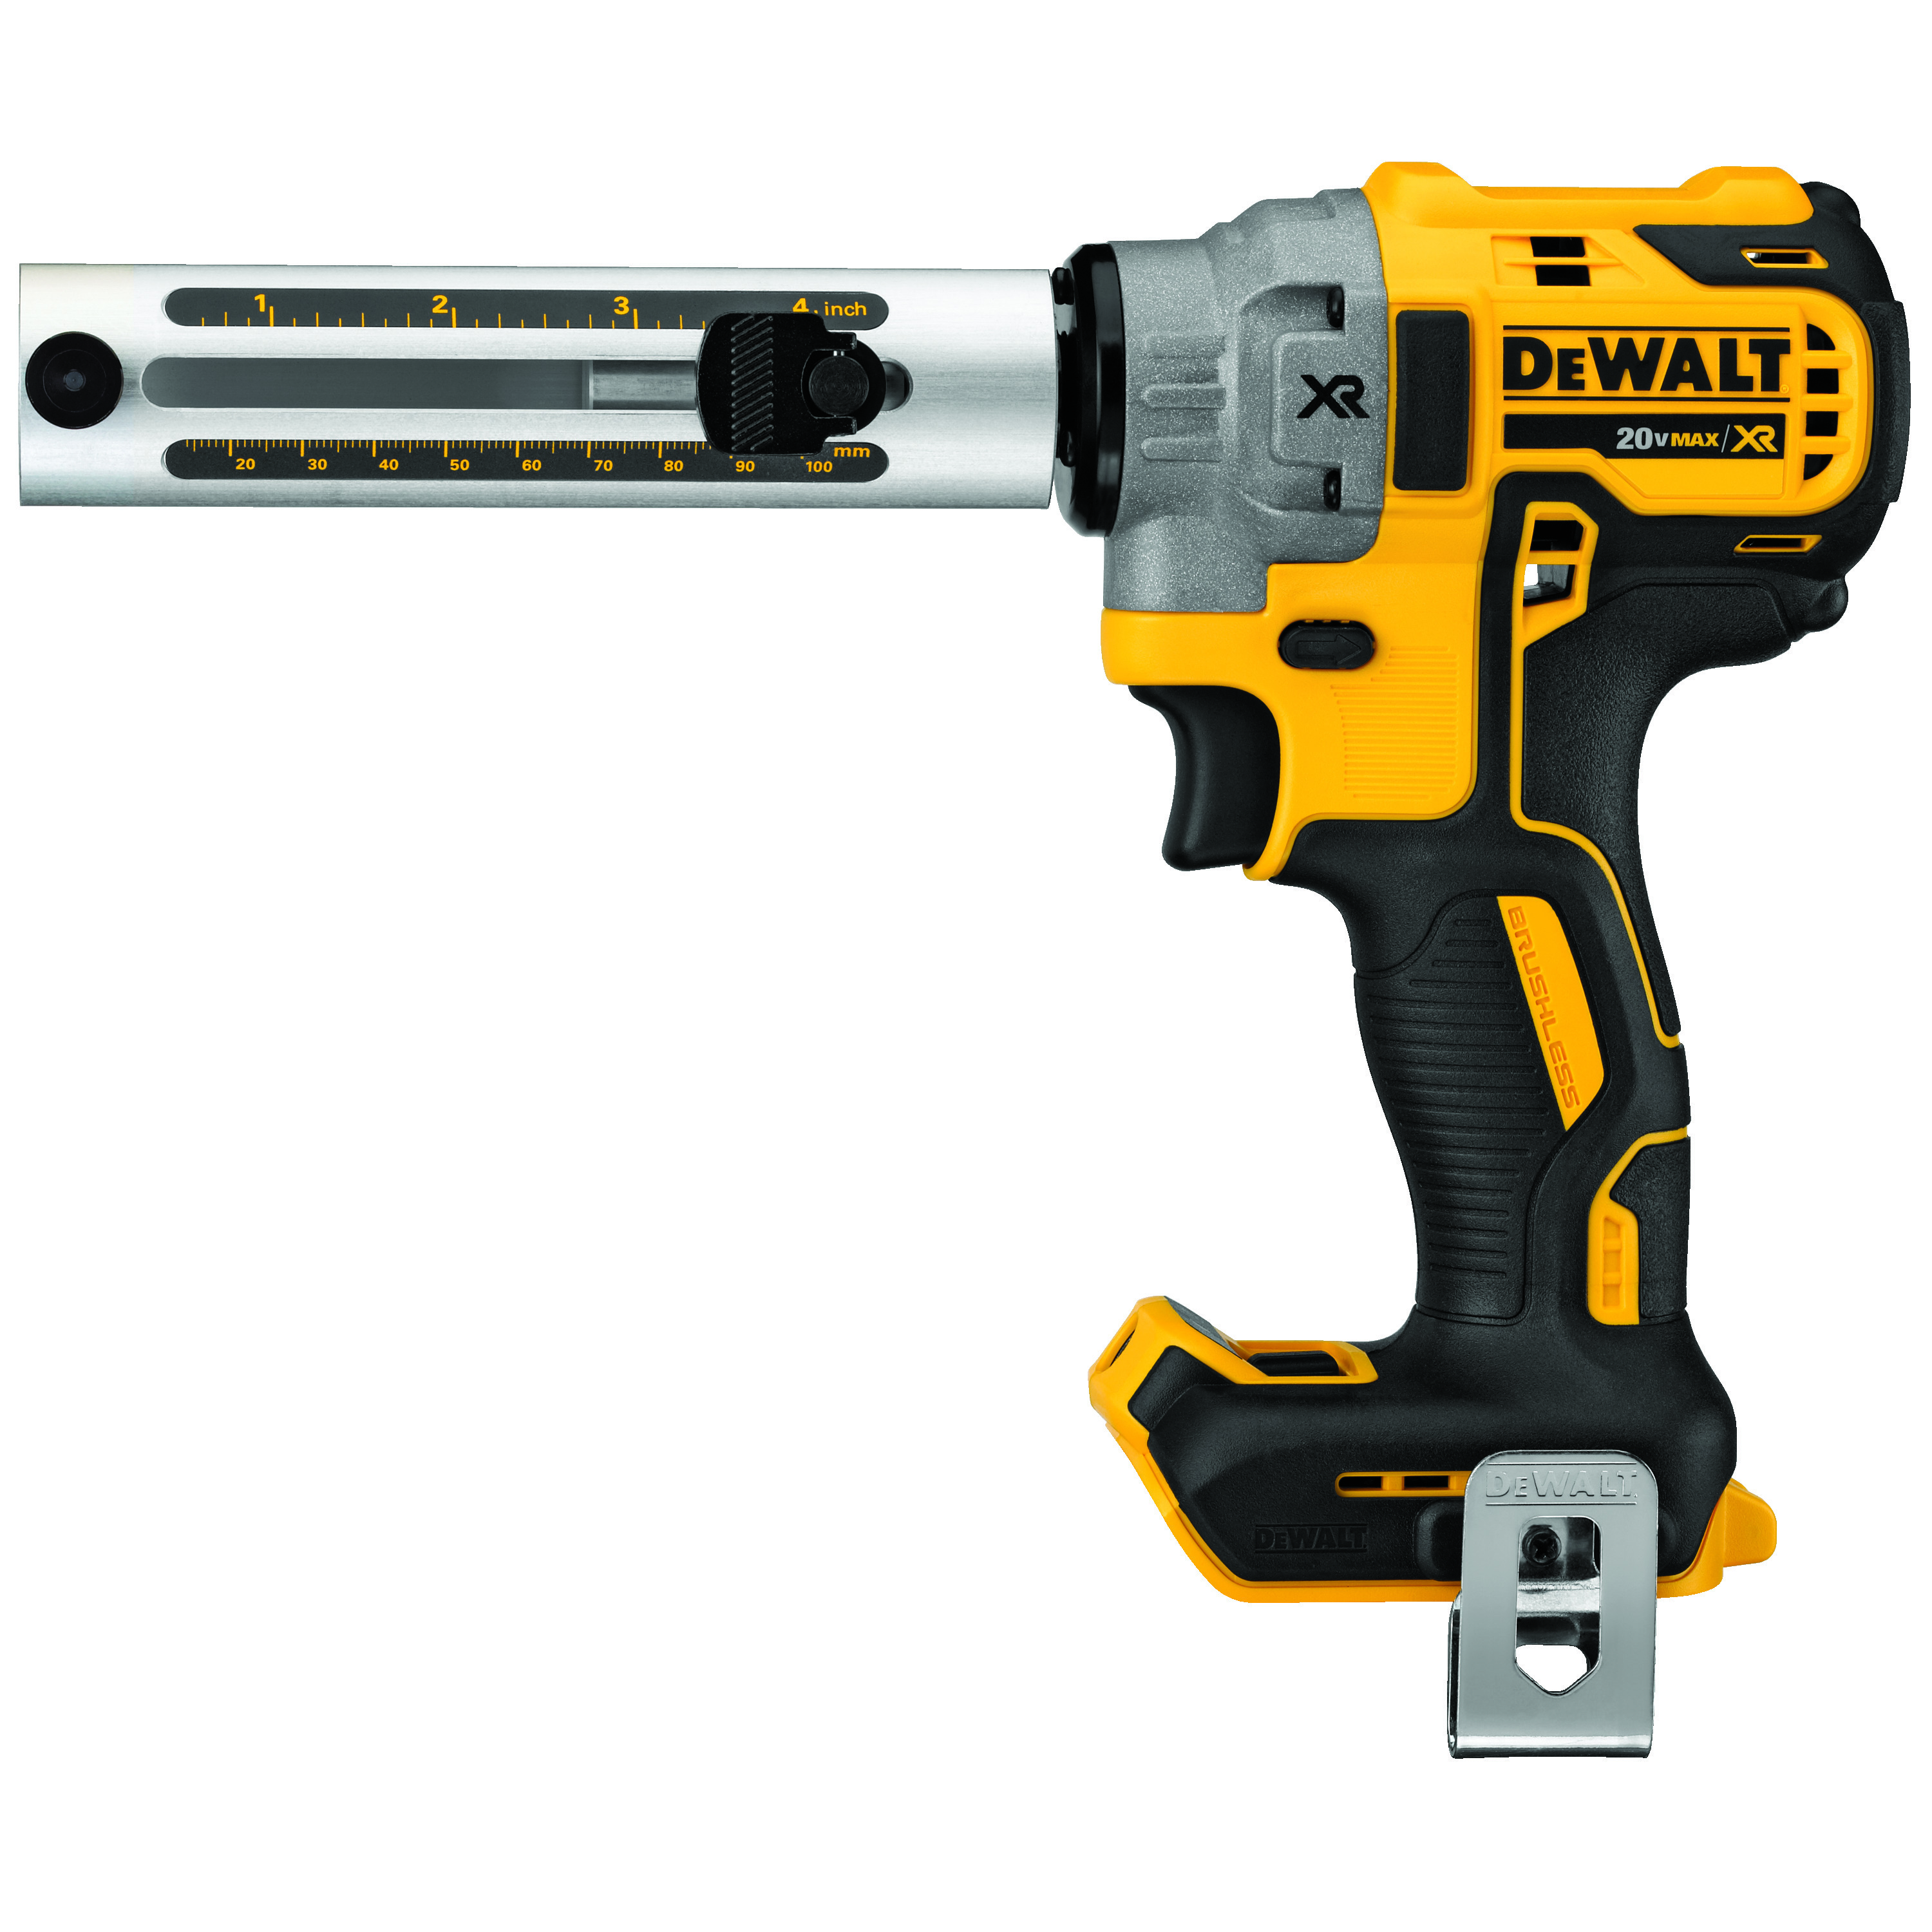 DeWALT® DCE151B Cordless Cable Stripper, 6 AWG to 750 kcmil Copper/Aluminum Cutting, 20 VDC, Lithium-Ion Battery